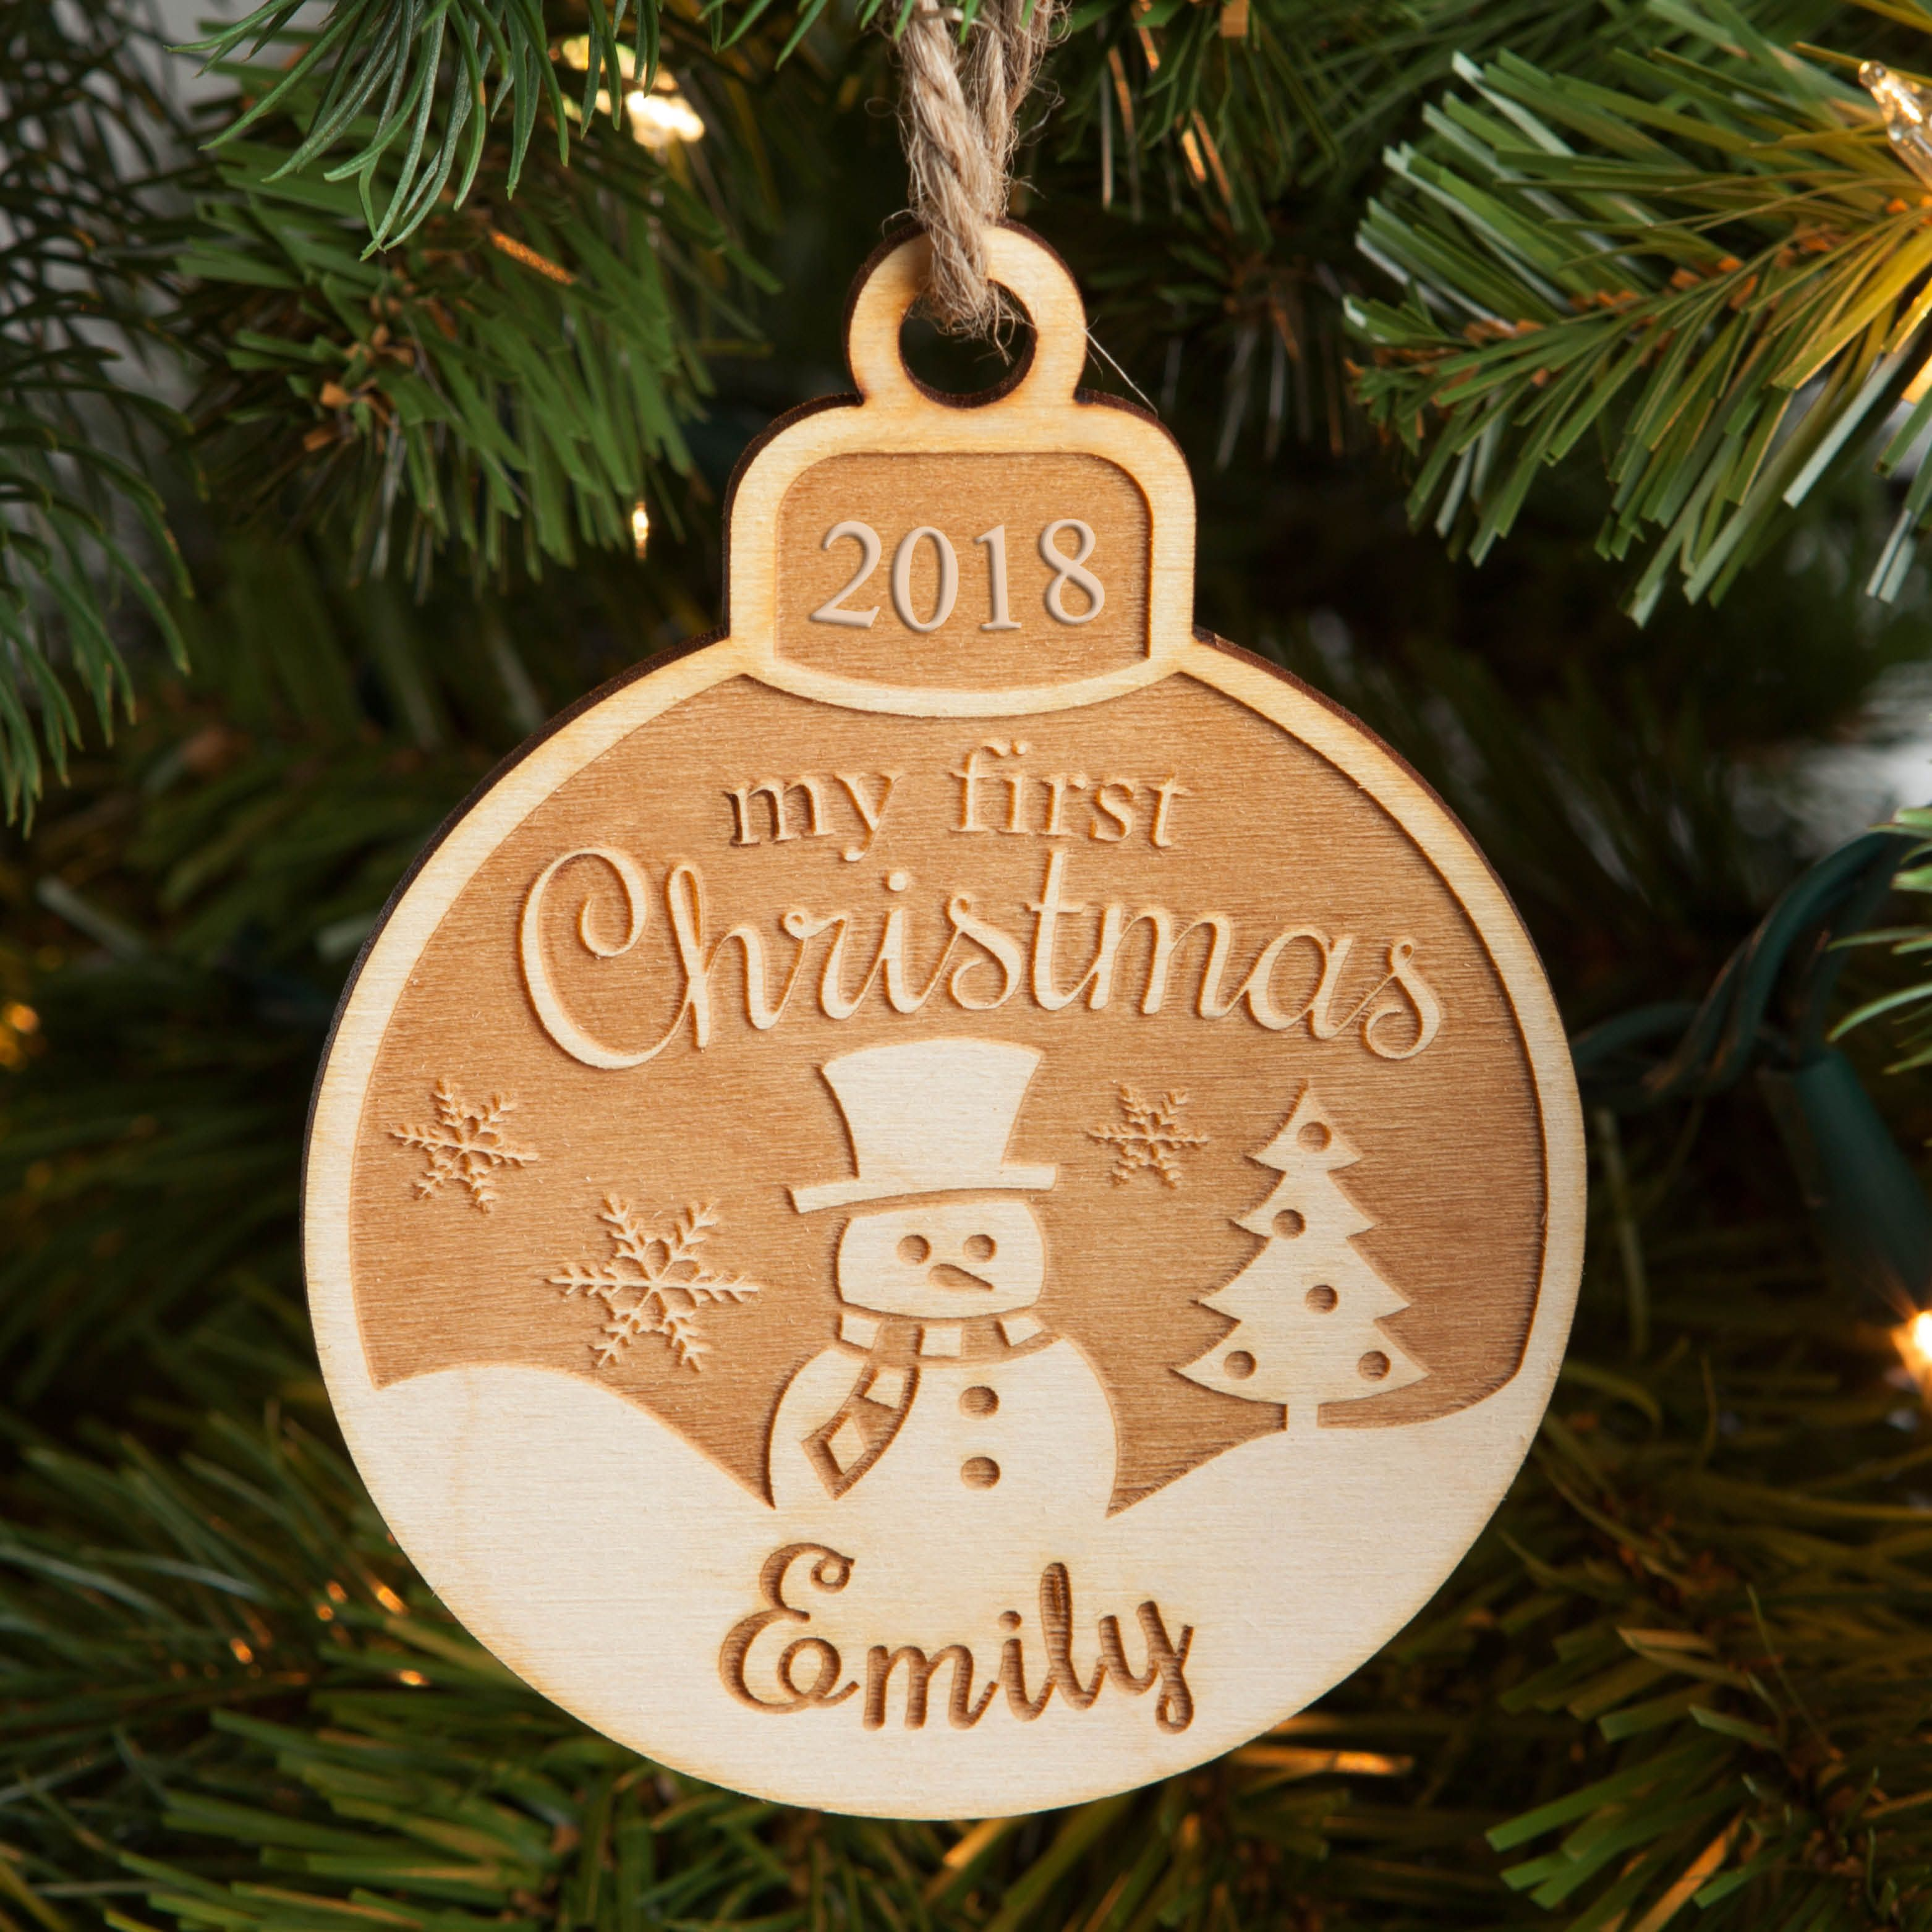 My First Christmas Personalized Wood Ornament Wood Cutout Ornaments Special Offer Engraved Christmas Ornaments Christmas Ornaments Wood Christmas Ornaments